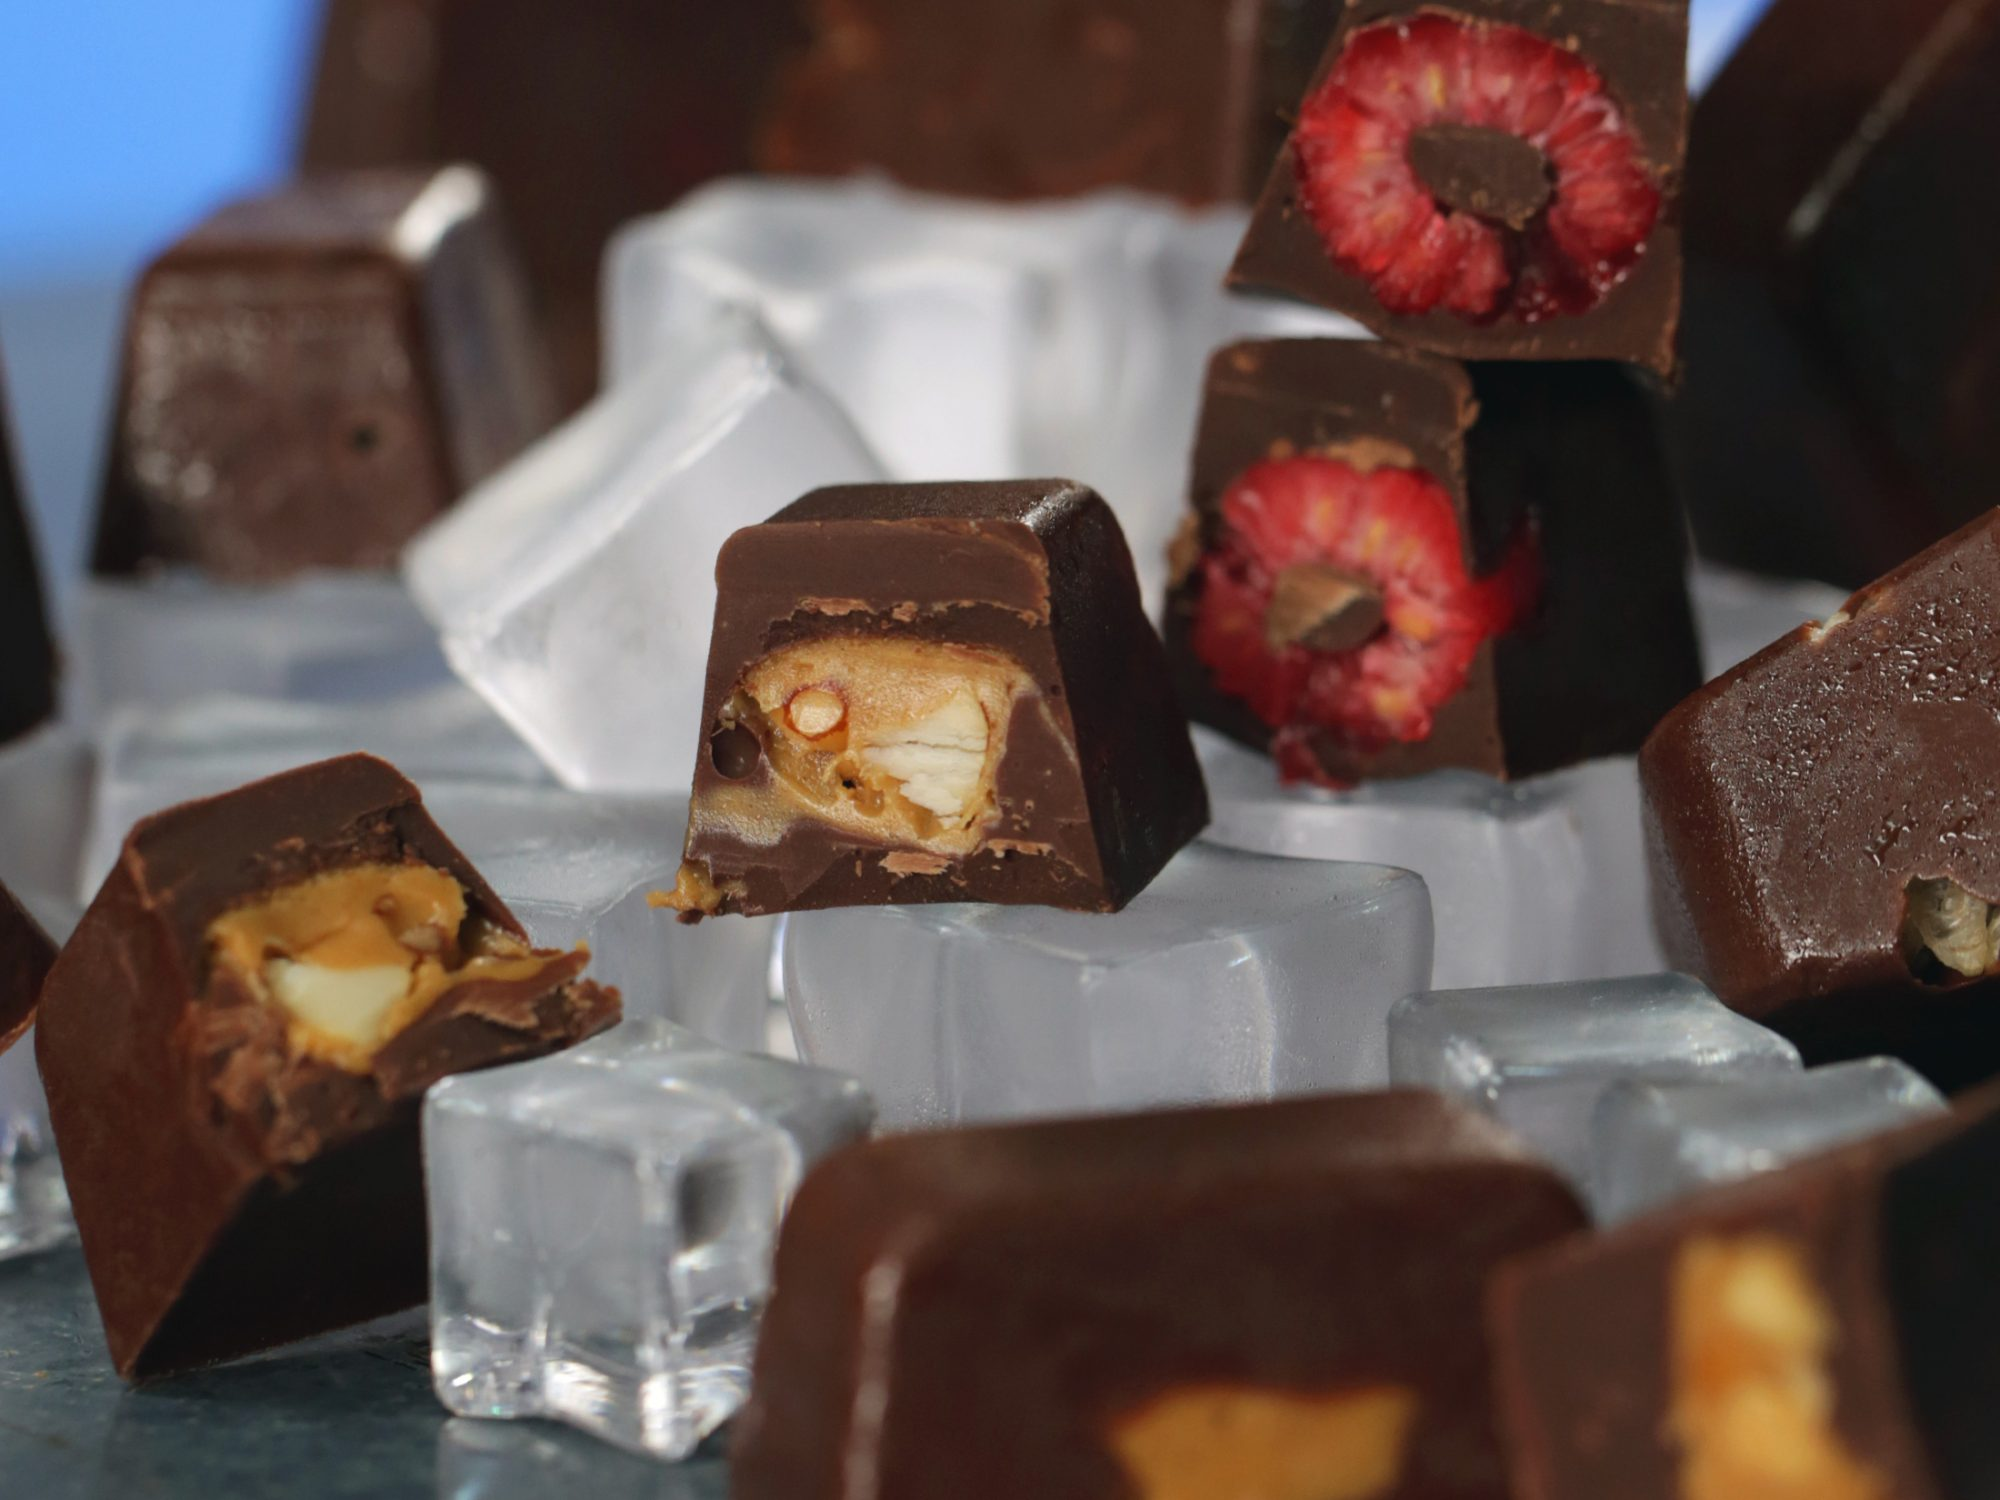 Ice Cube Tray Chocolate Treats image